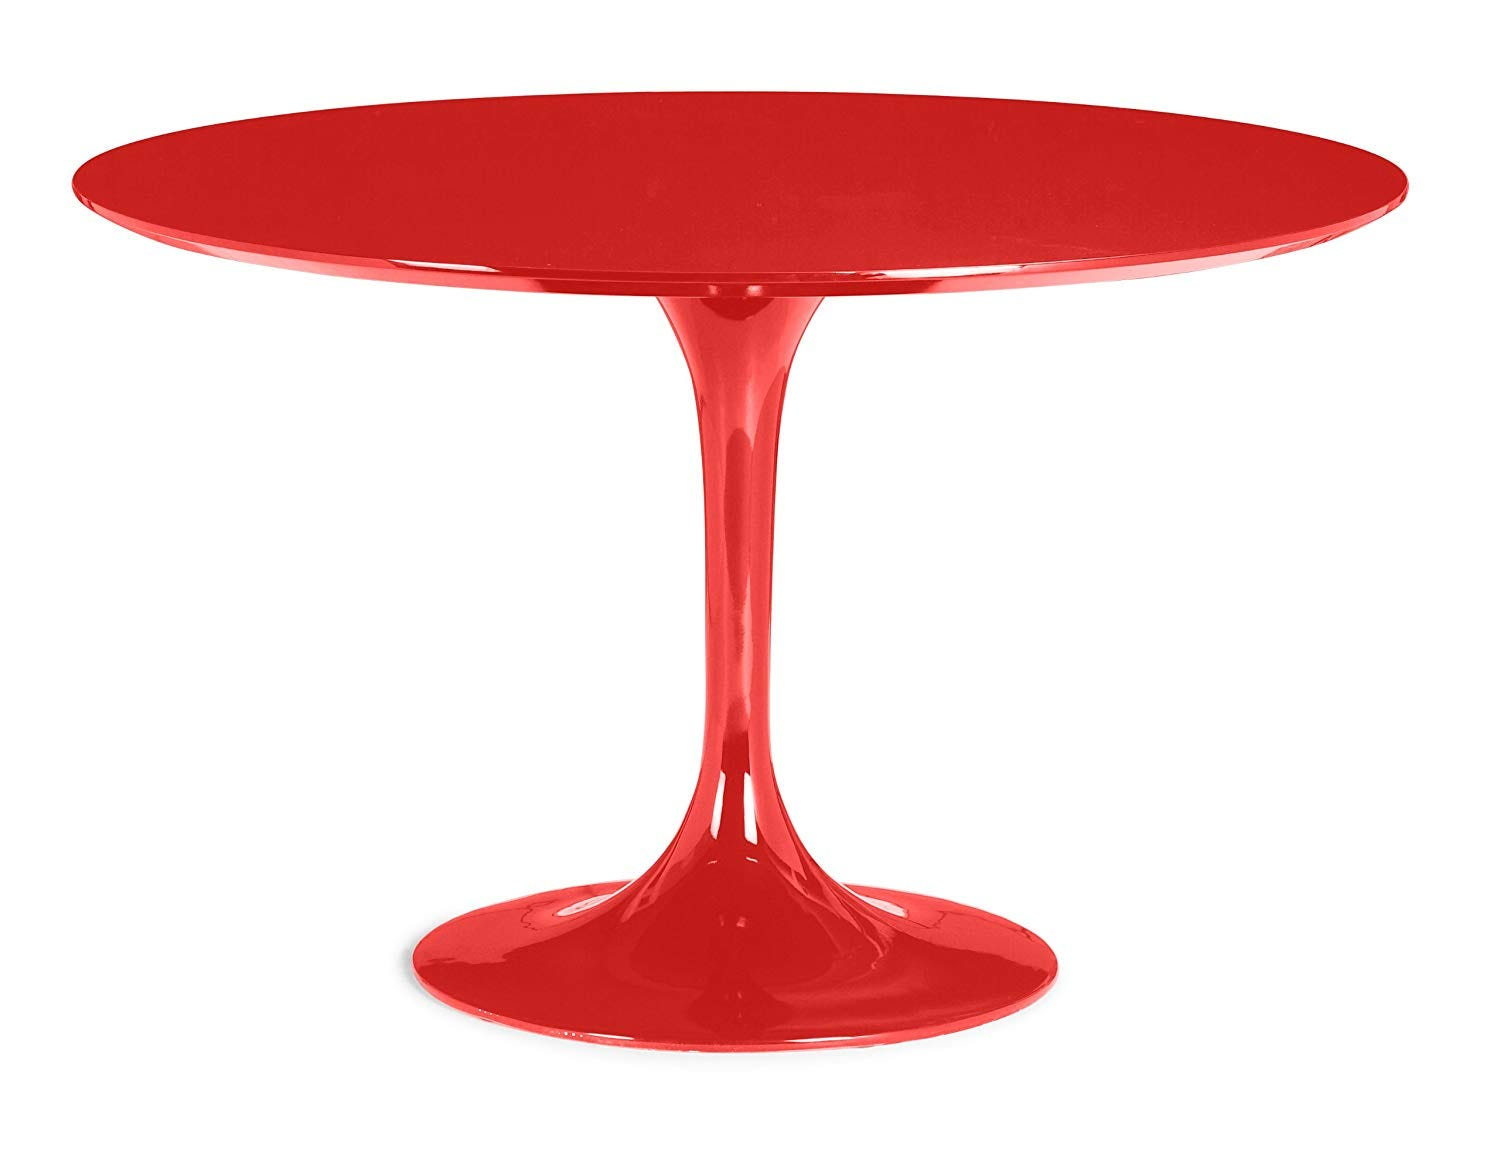 How To Buy Red Table From Jada Pinkett Smith Talk Show